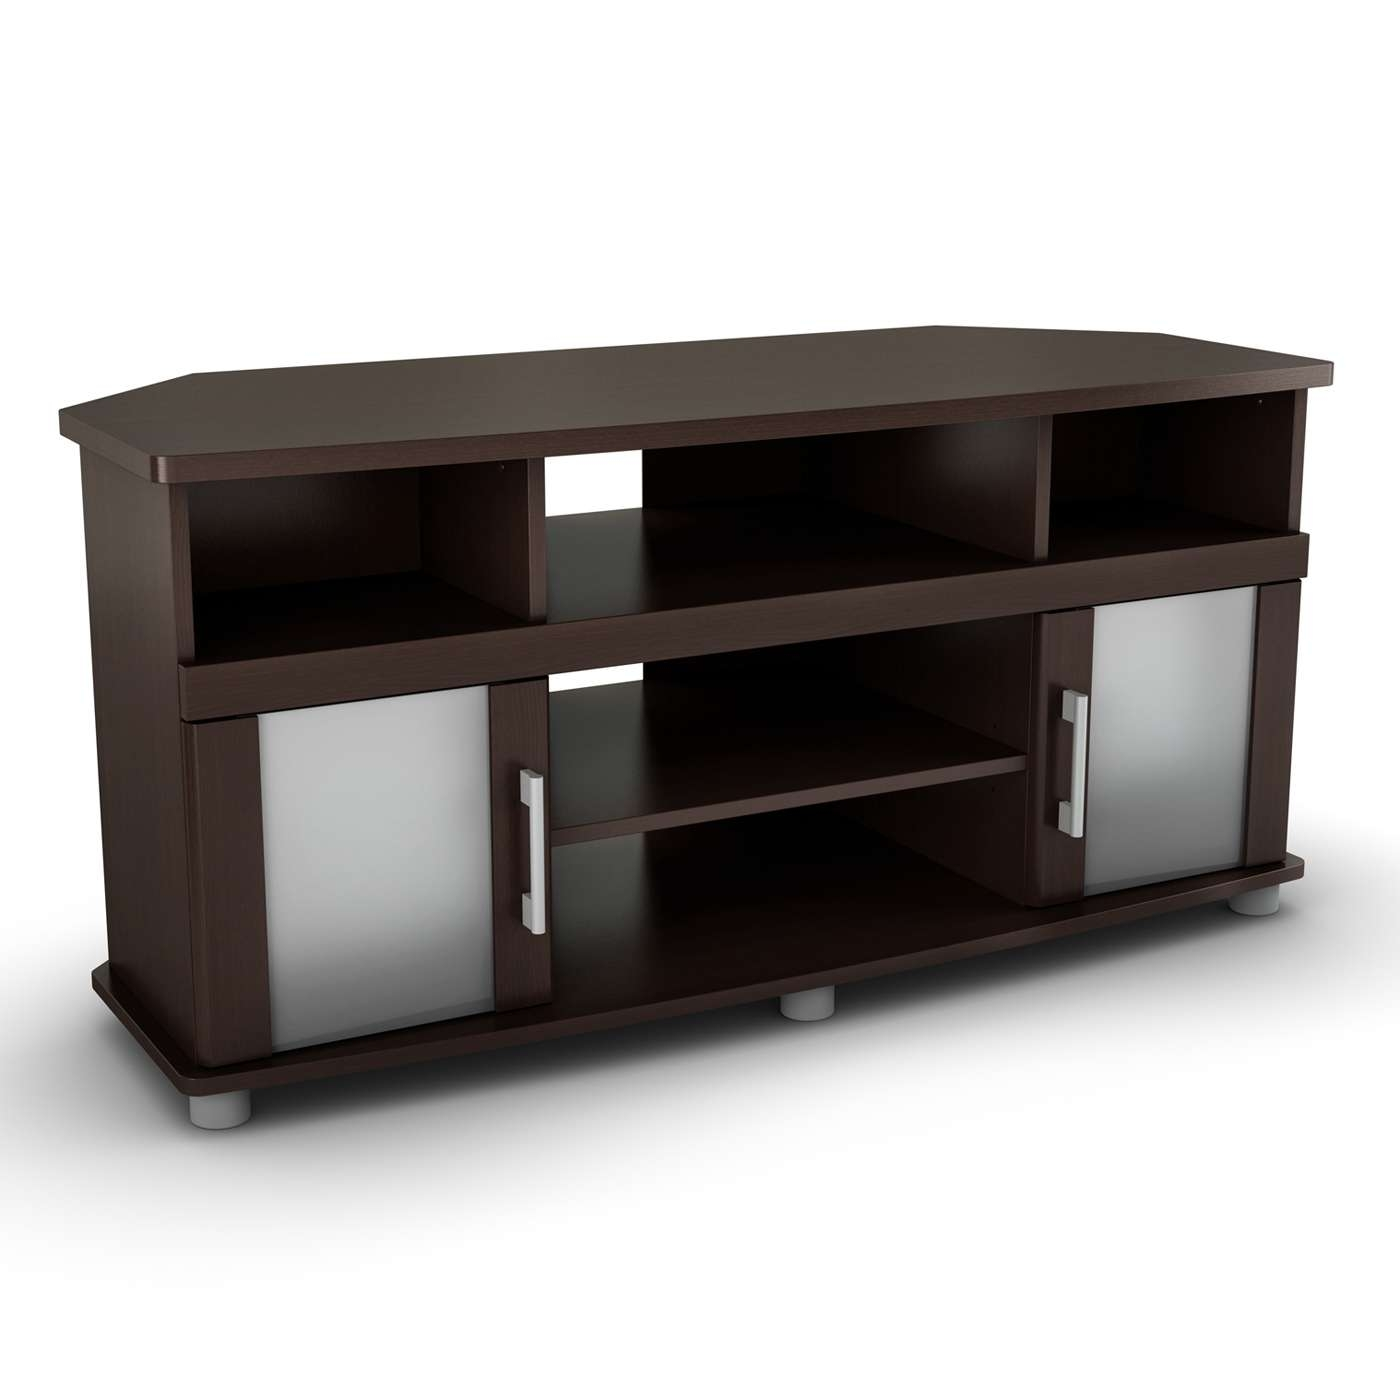 South Shore Furniture City Life Corner Tv Stand | Lowe's Canada In Small Corner Tv Stands (View 17 of 20)